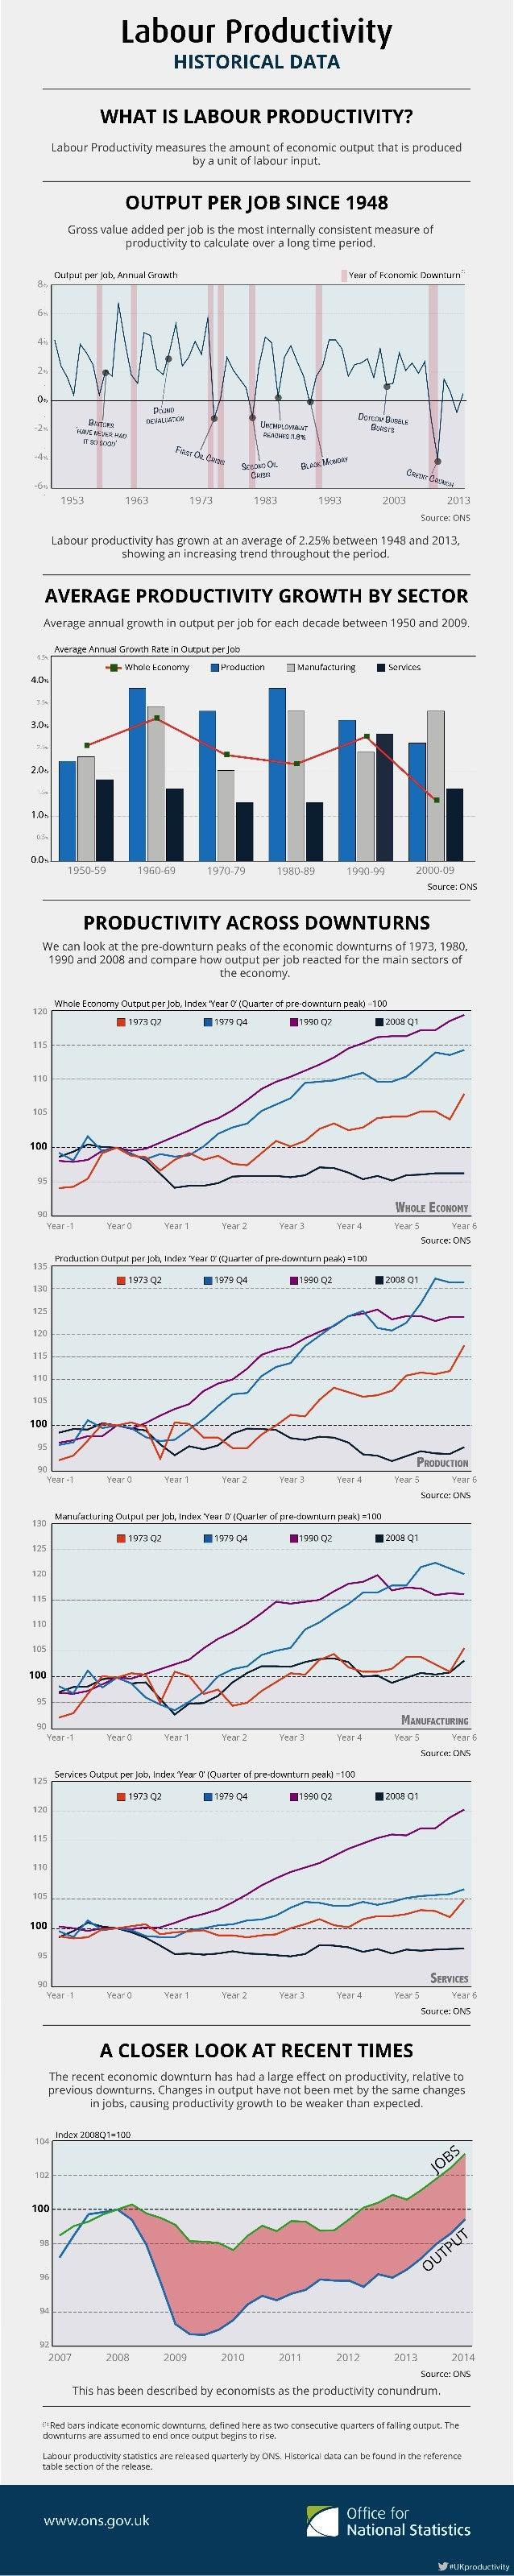 Labour Productivity - Infographic on Historical Data